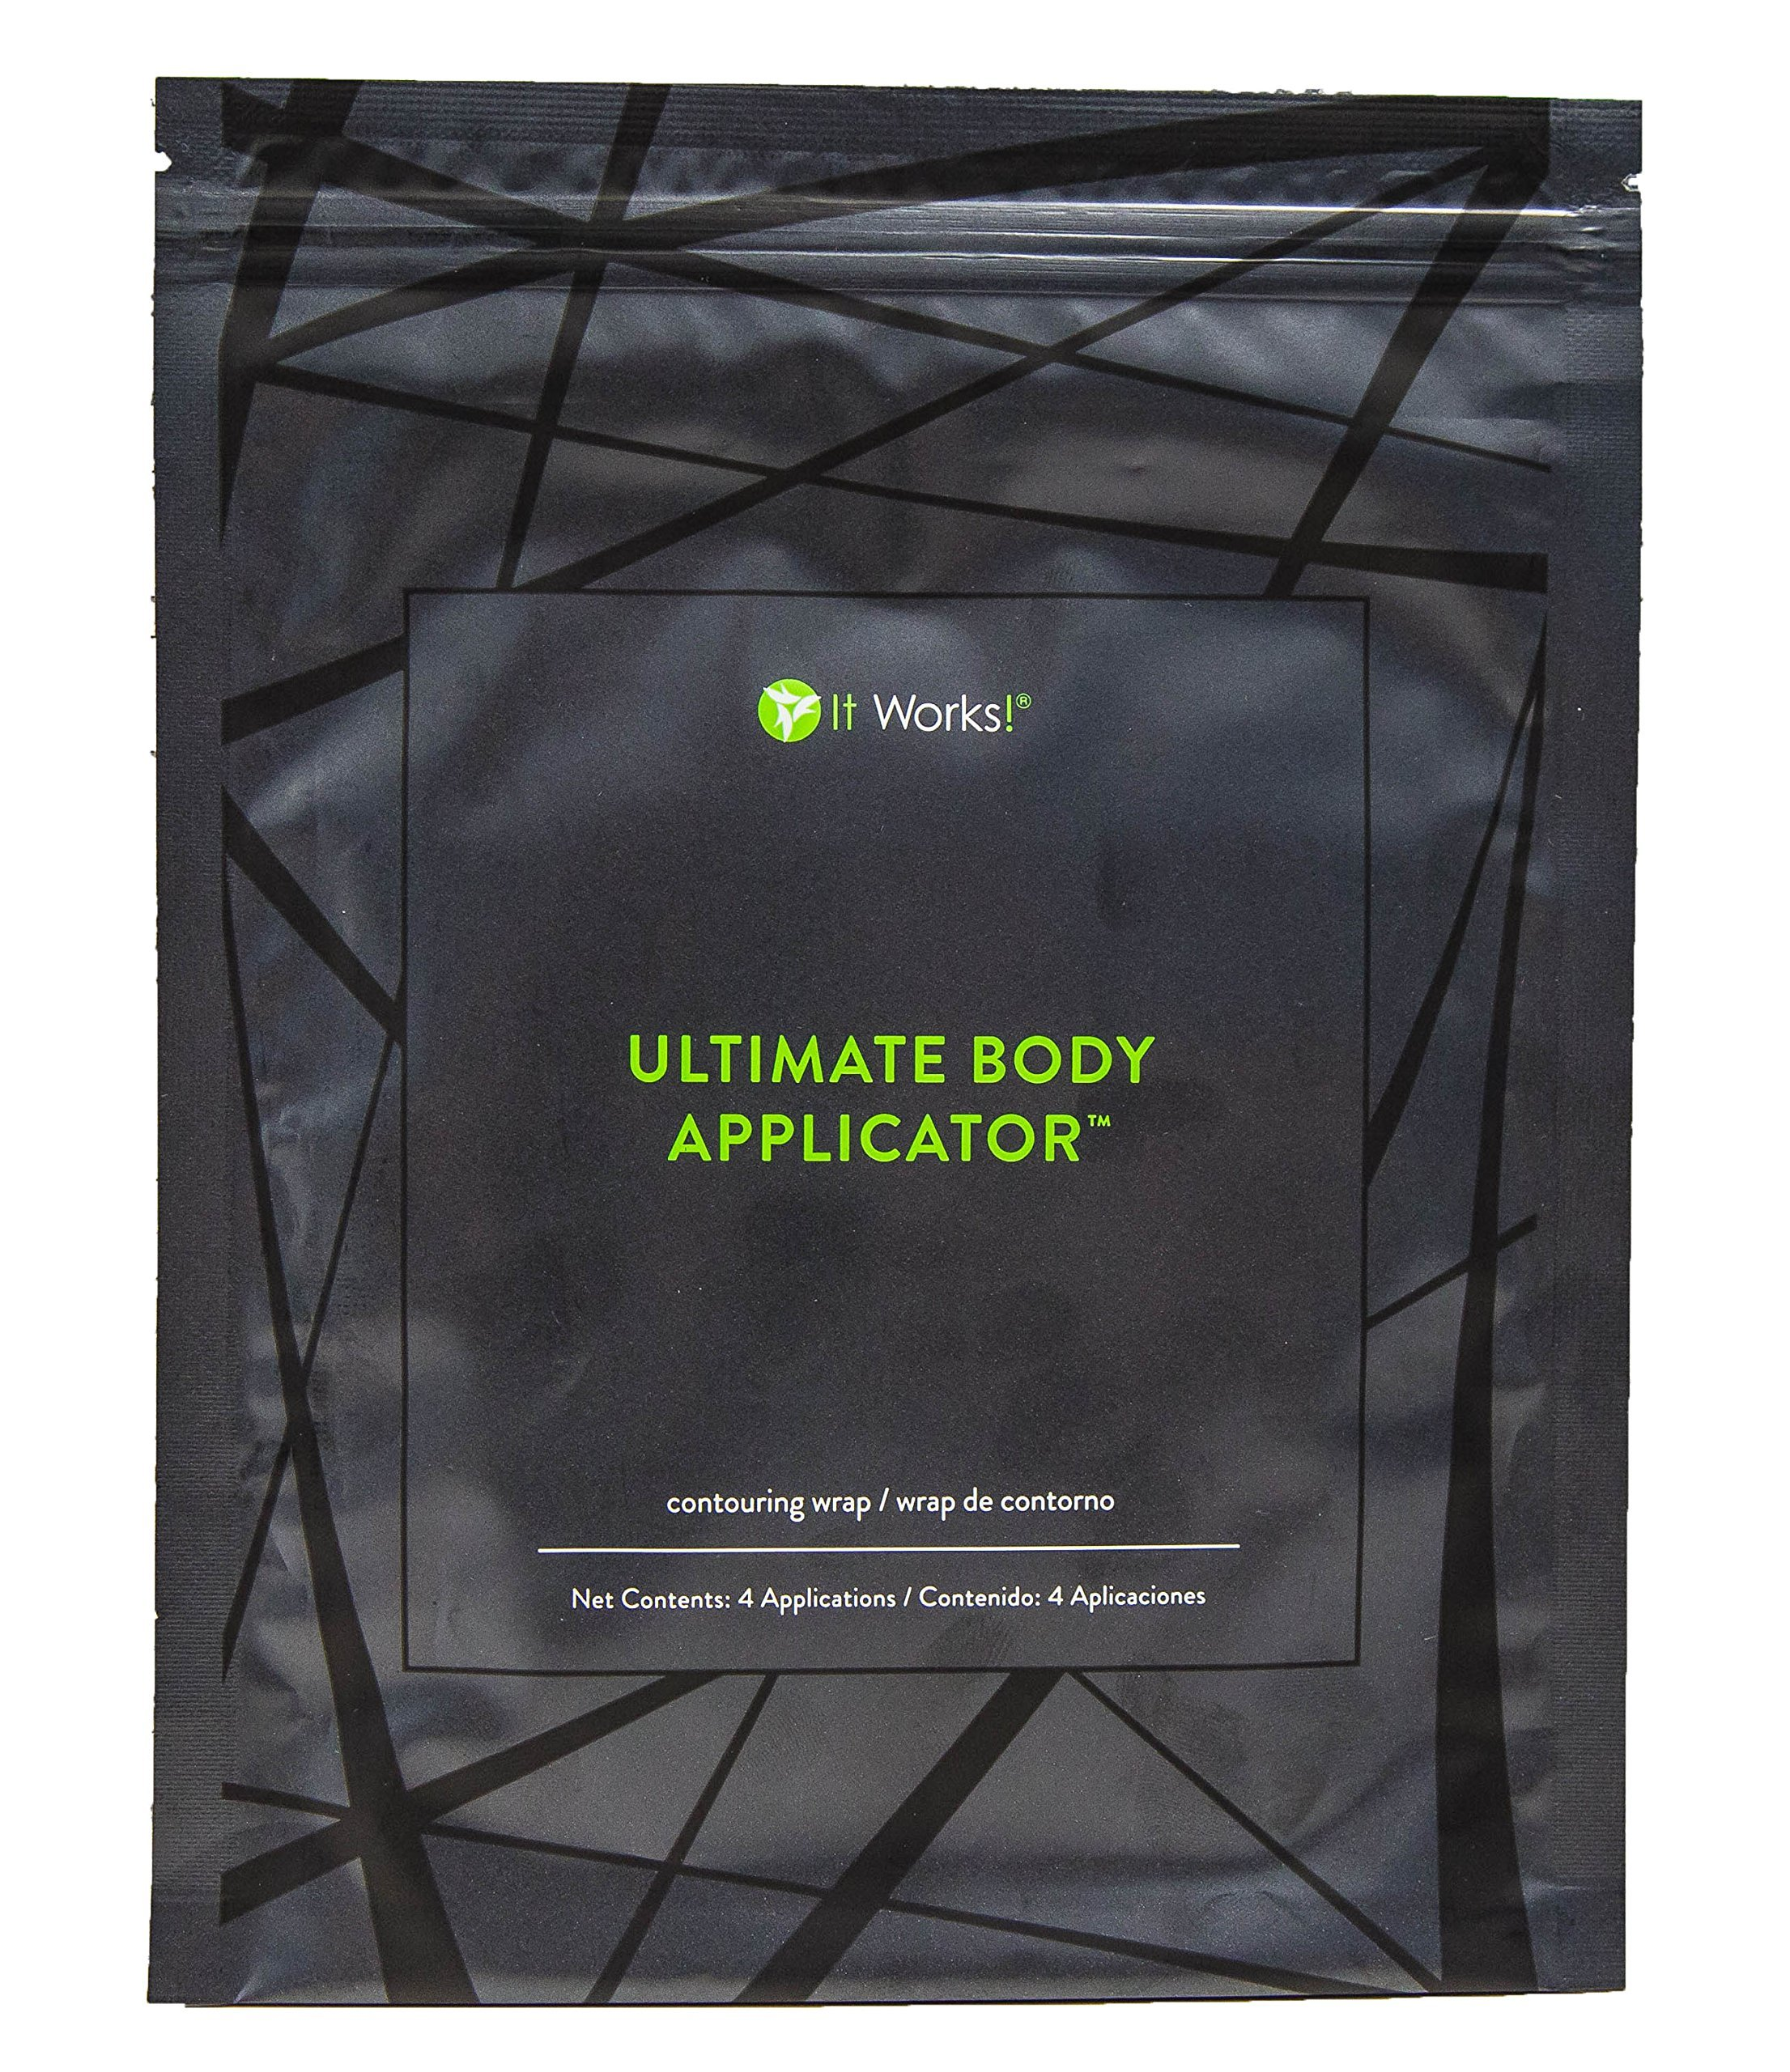 It Works Ultimate Body Applicator - 4 Wraps